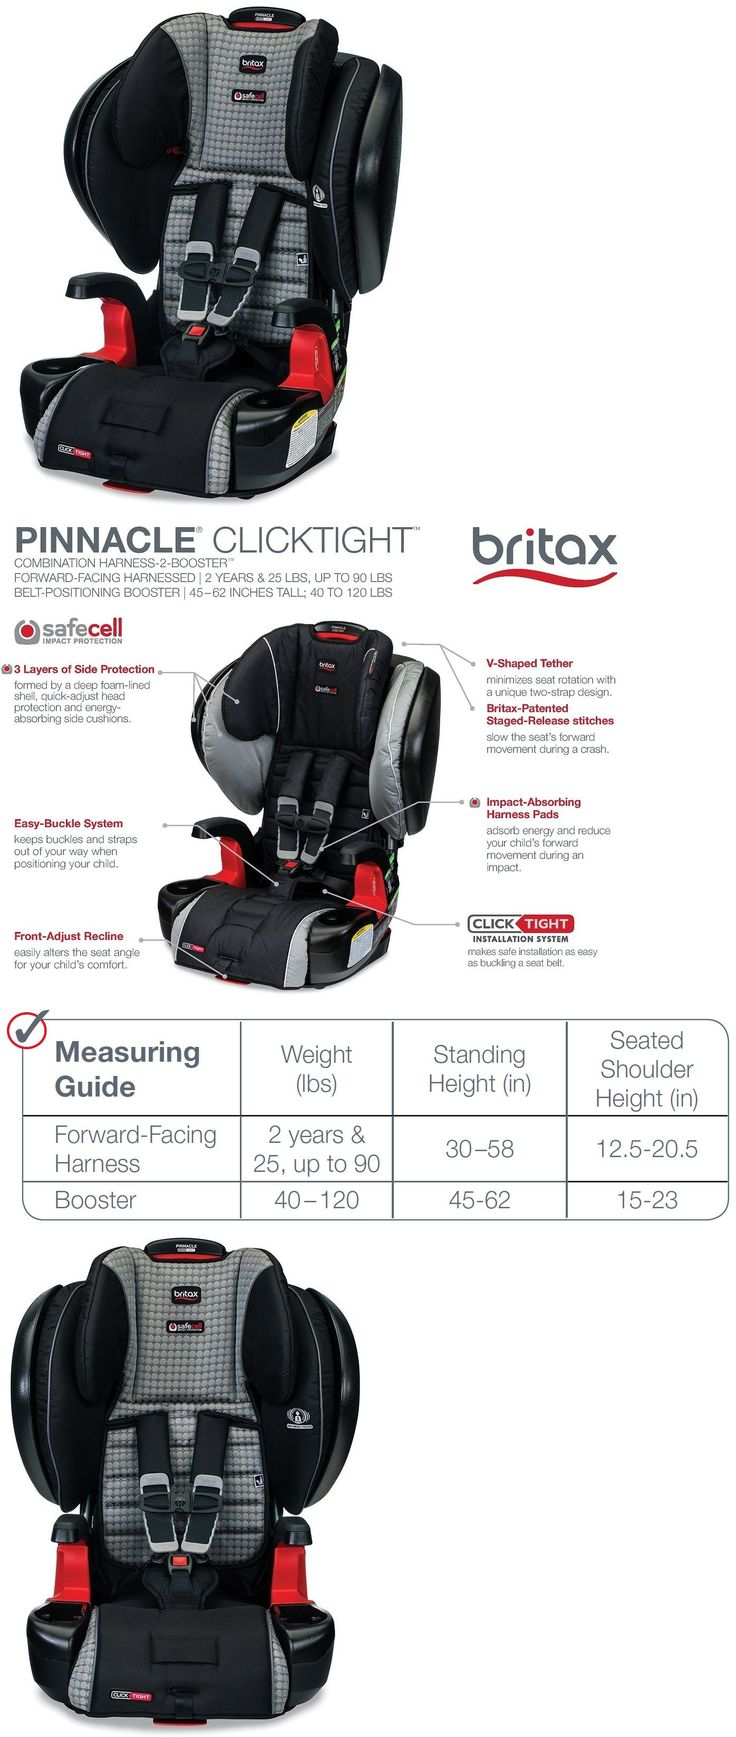 Other Car Safety Seats 2987: Britax Pinnacle Clicktight Combination Harness-2-Booster Car Seat 2017 Venti -> BUY IT NOW ONLY: $312 on eBay!